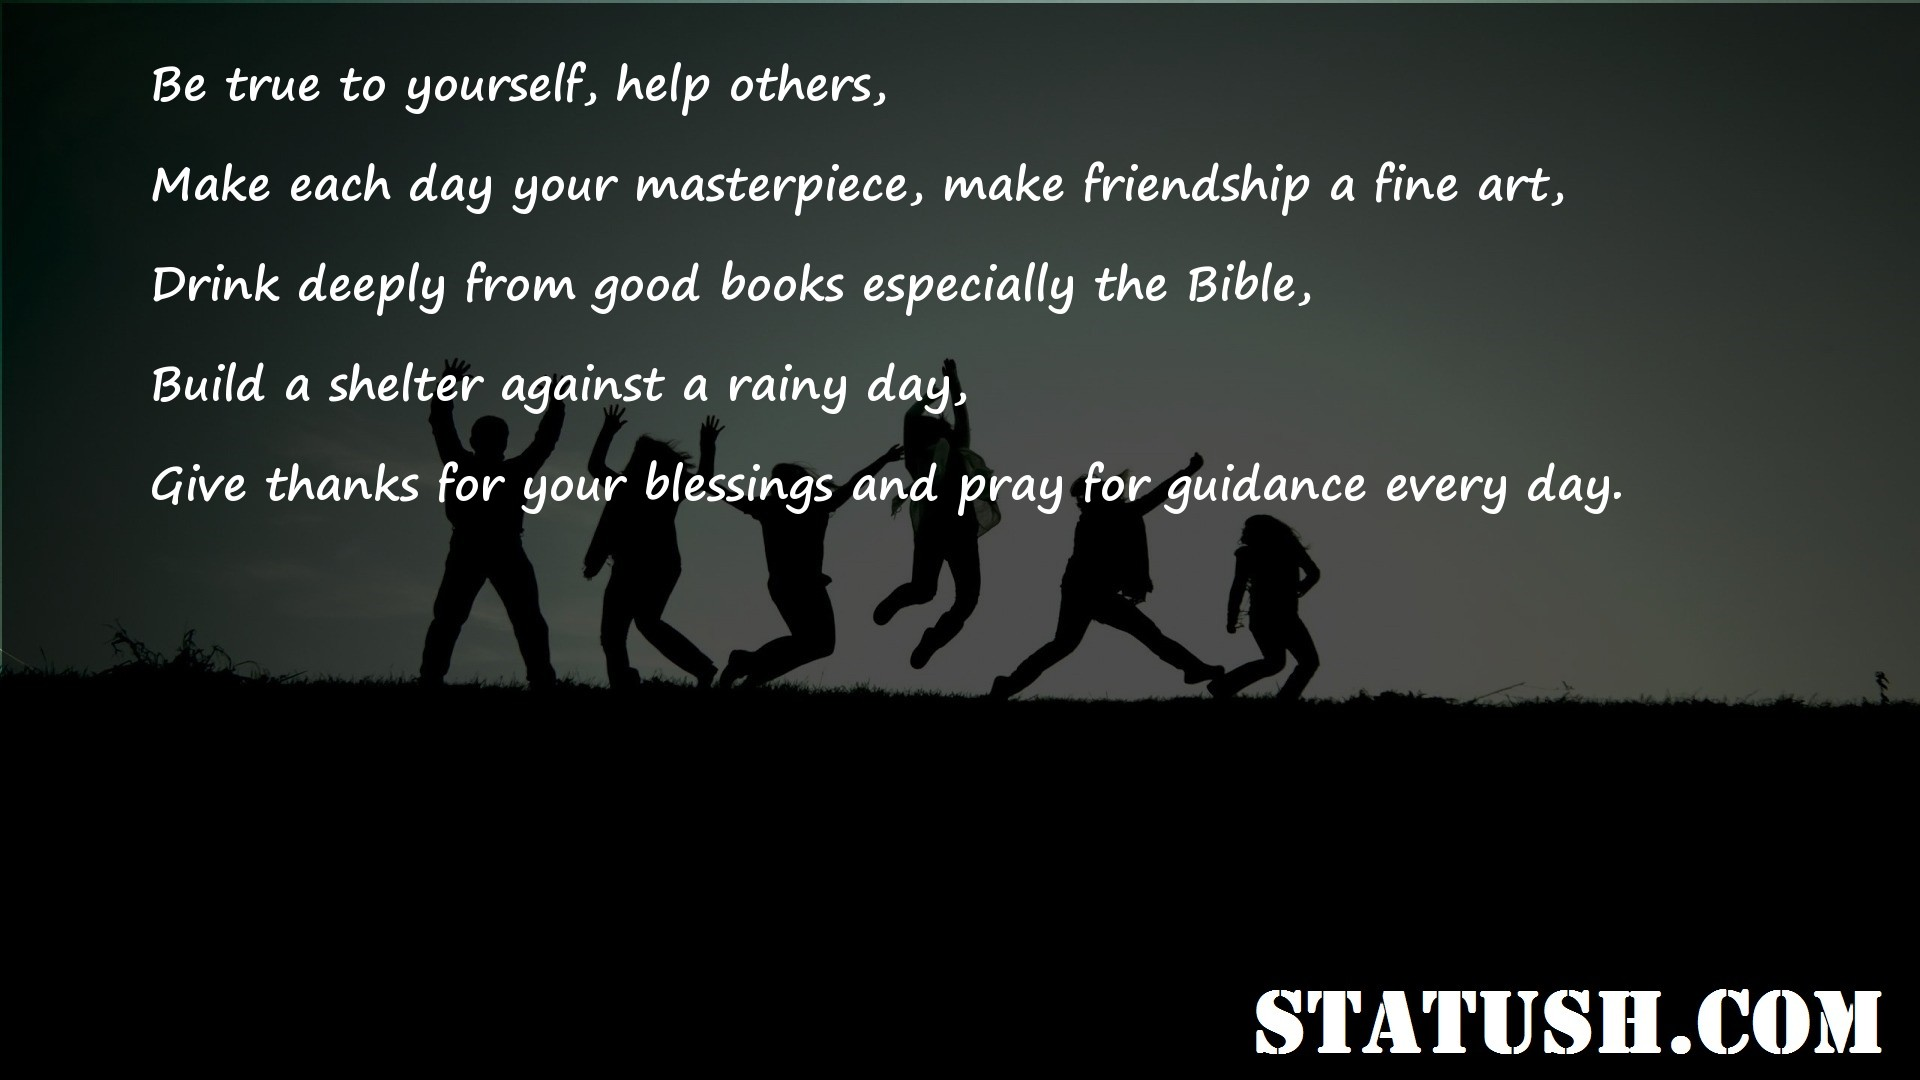 Be true to yourself help others